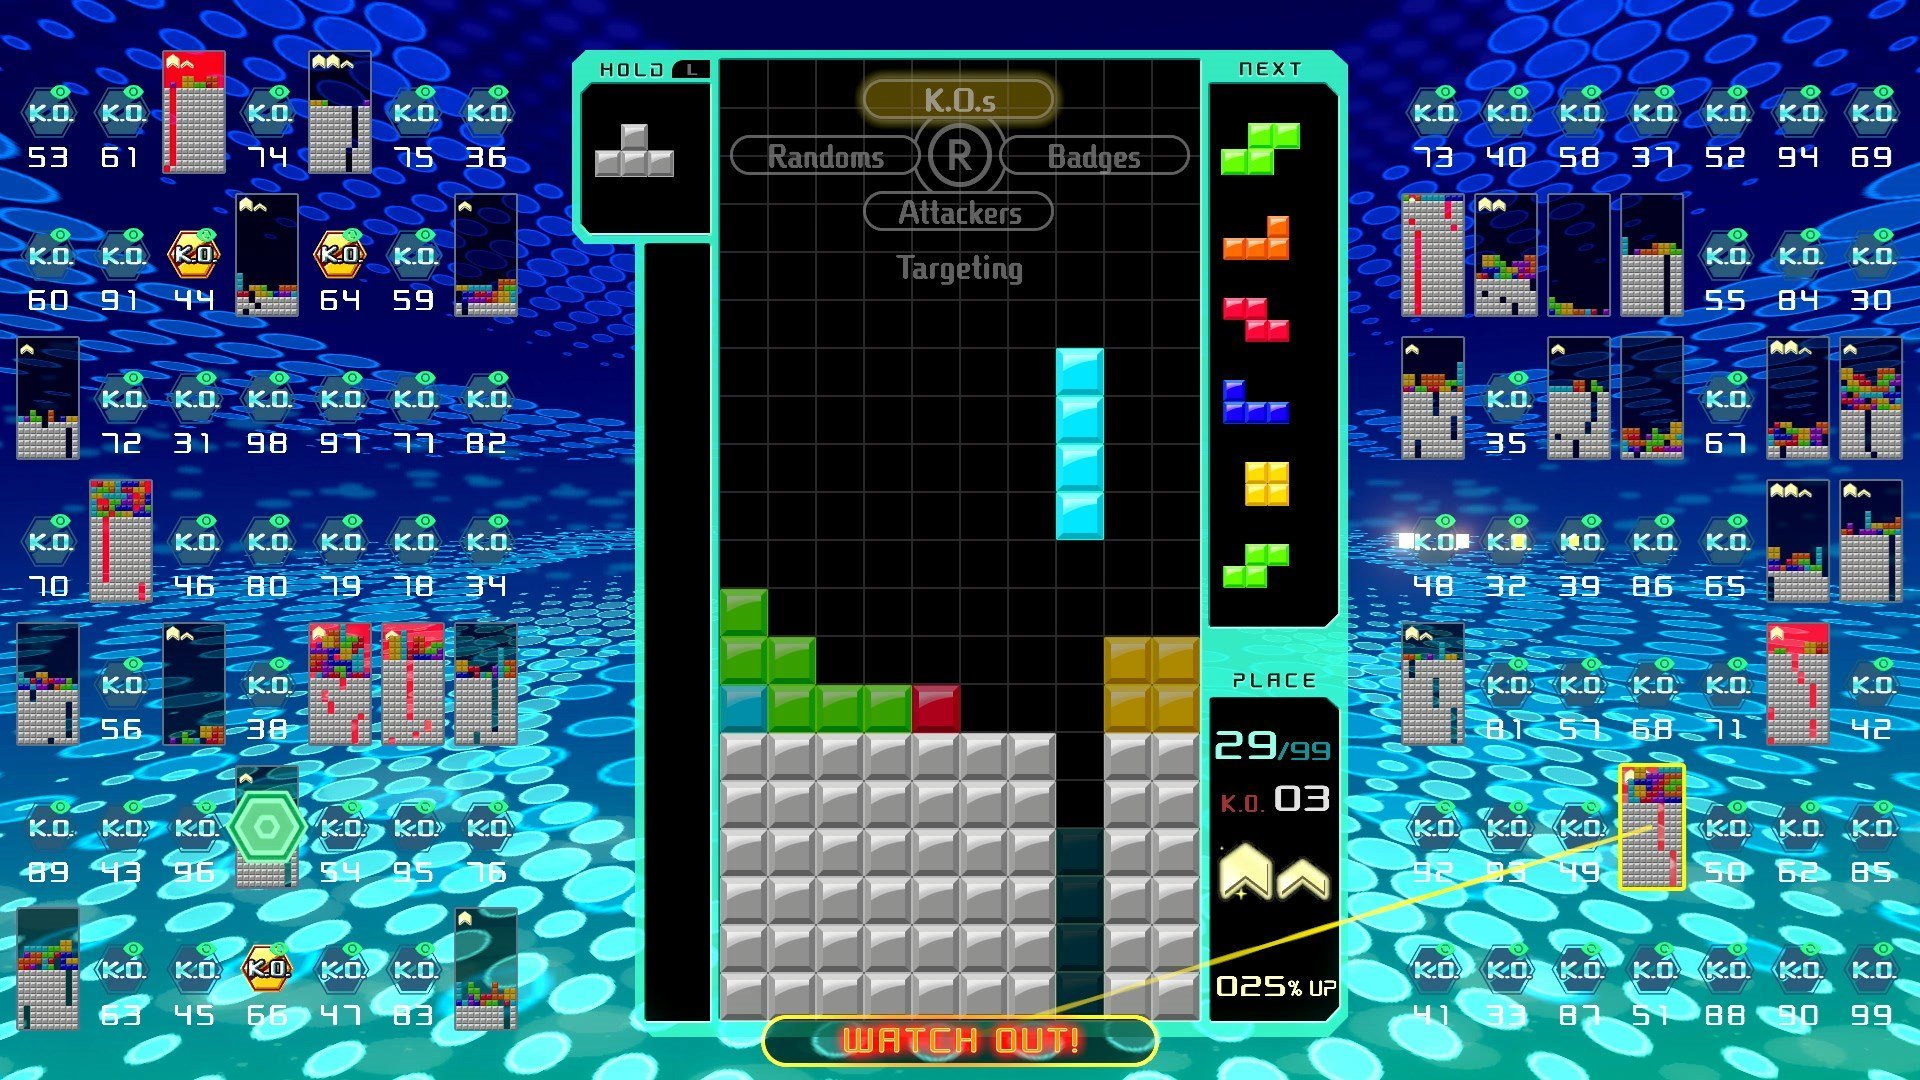 You can view your badges and badge progress at the bottom right corner of your Matrix in Tetris 99.